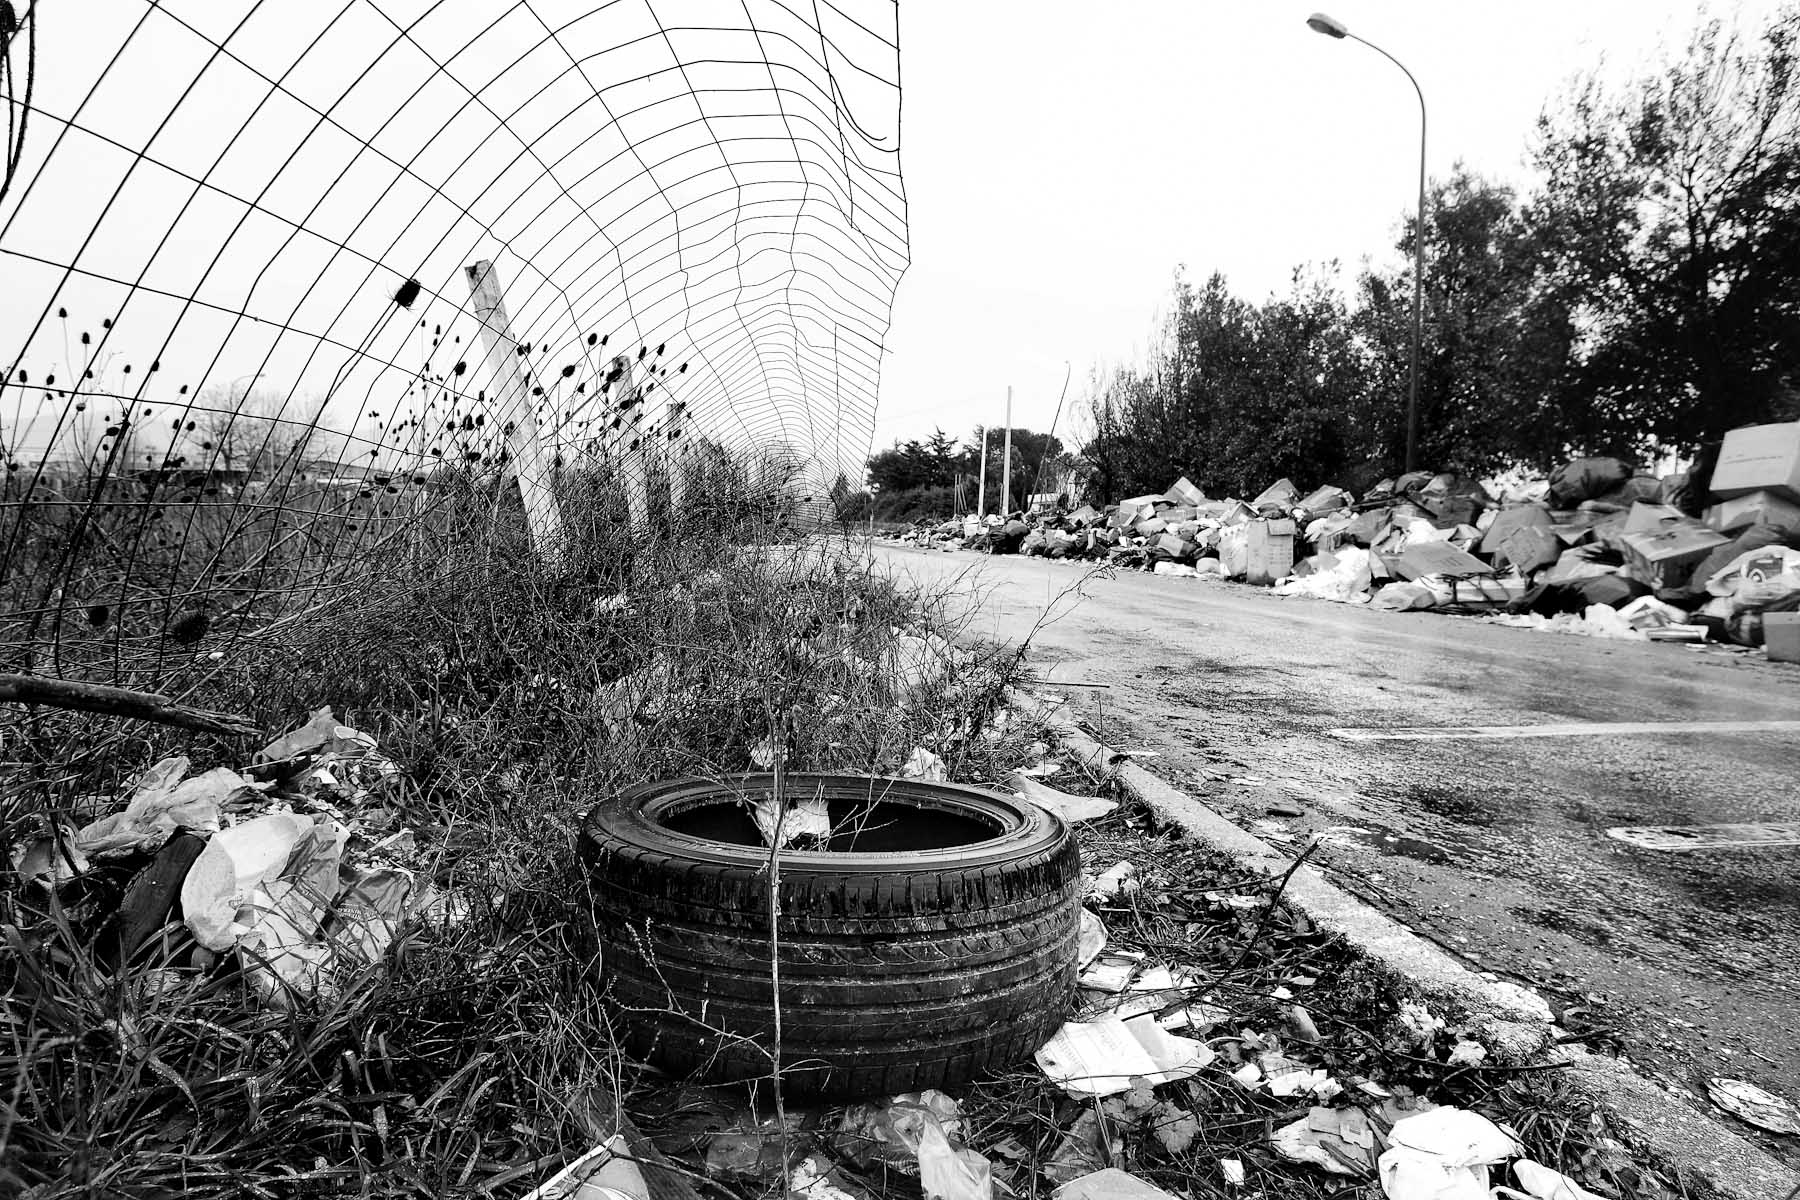 Garbage piles up along a street in the industrial part of Caserta on the outskirts of Naples, on February 21, 2008.